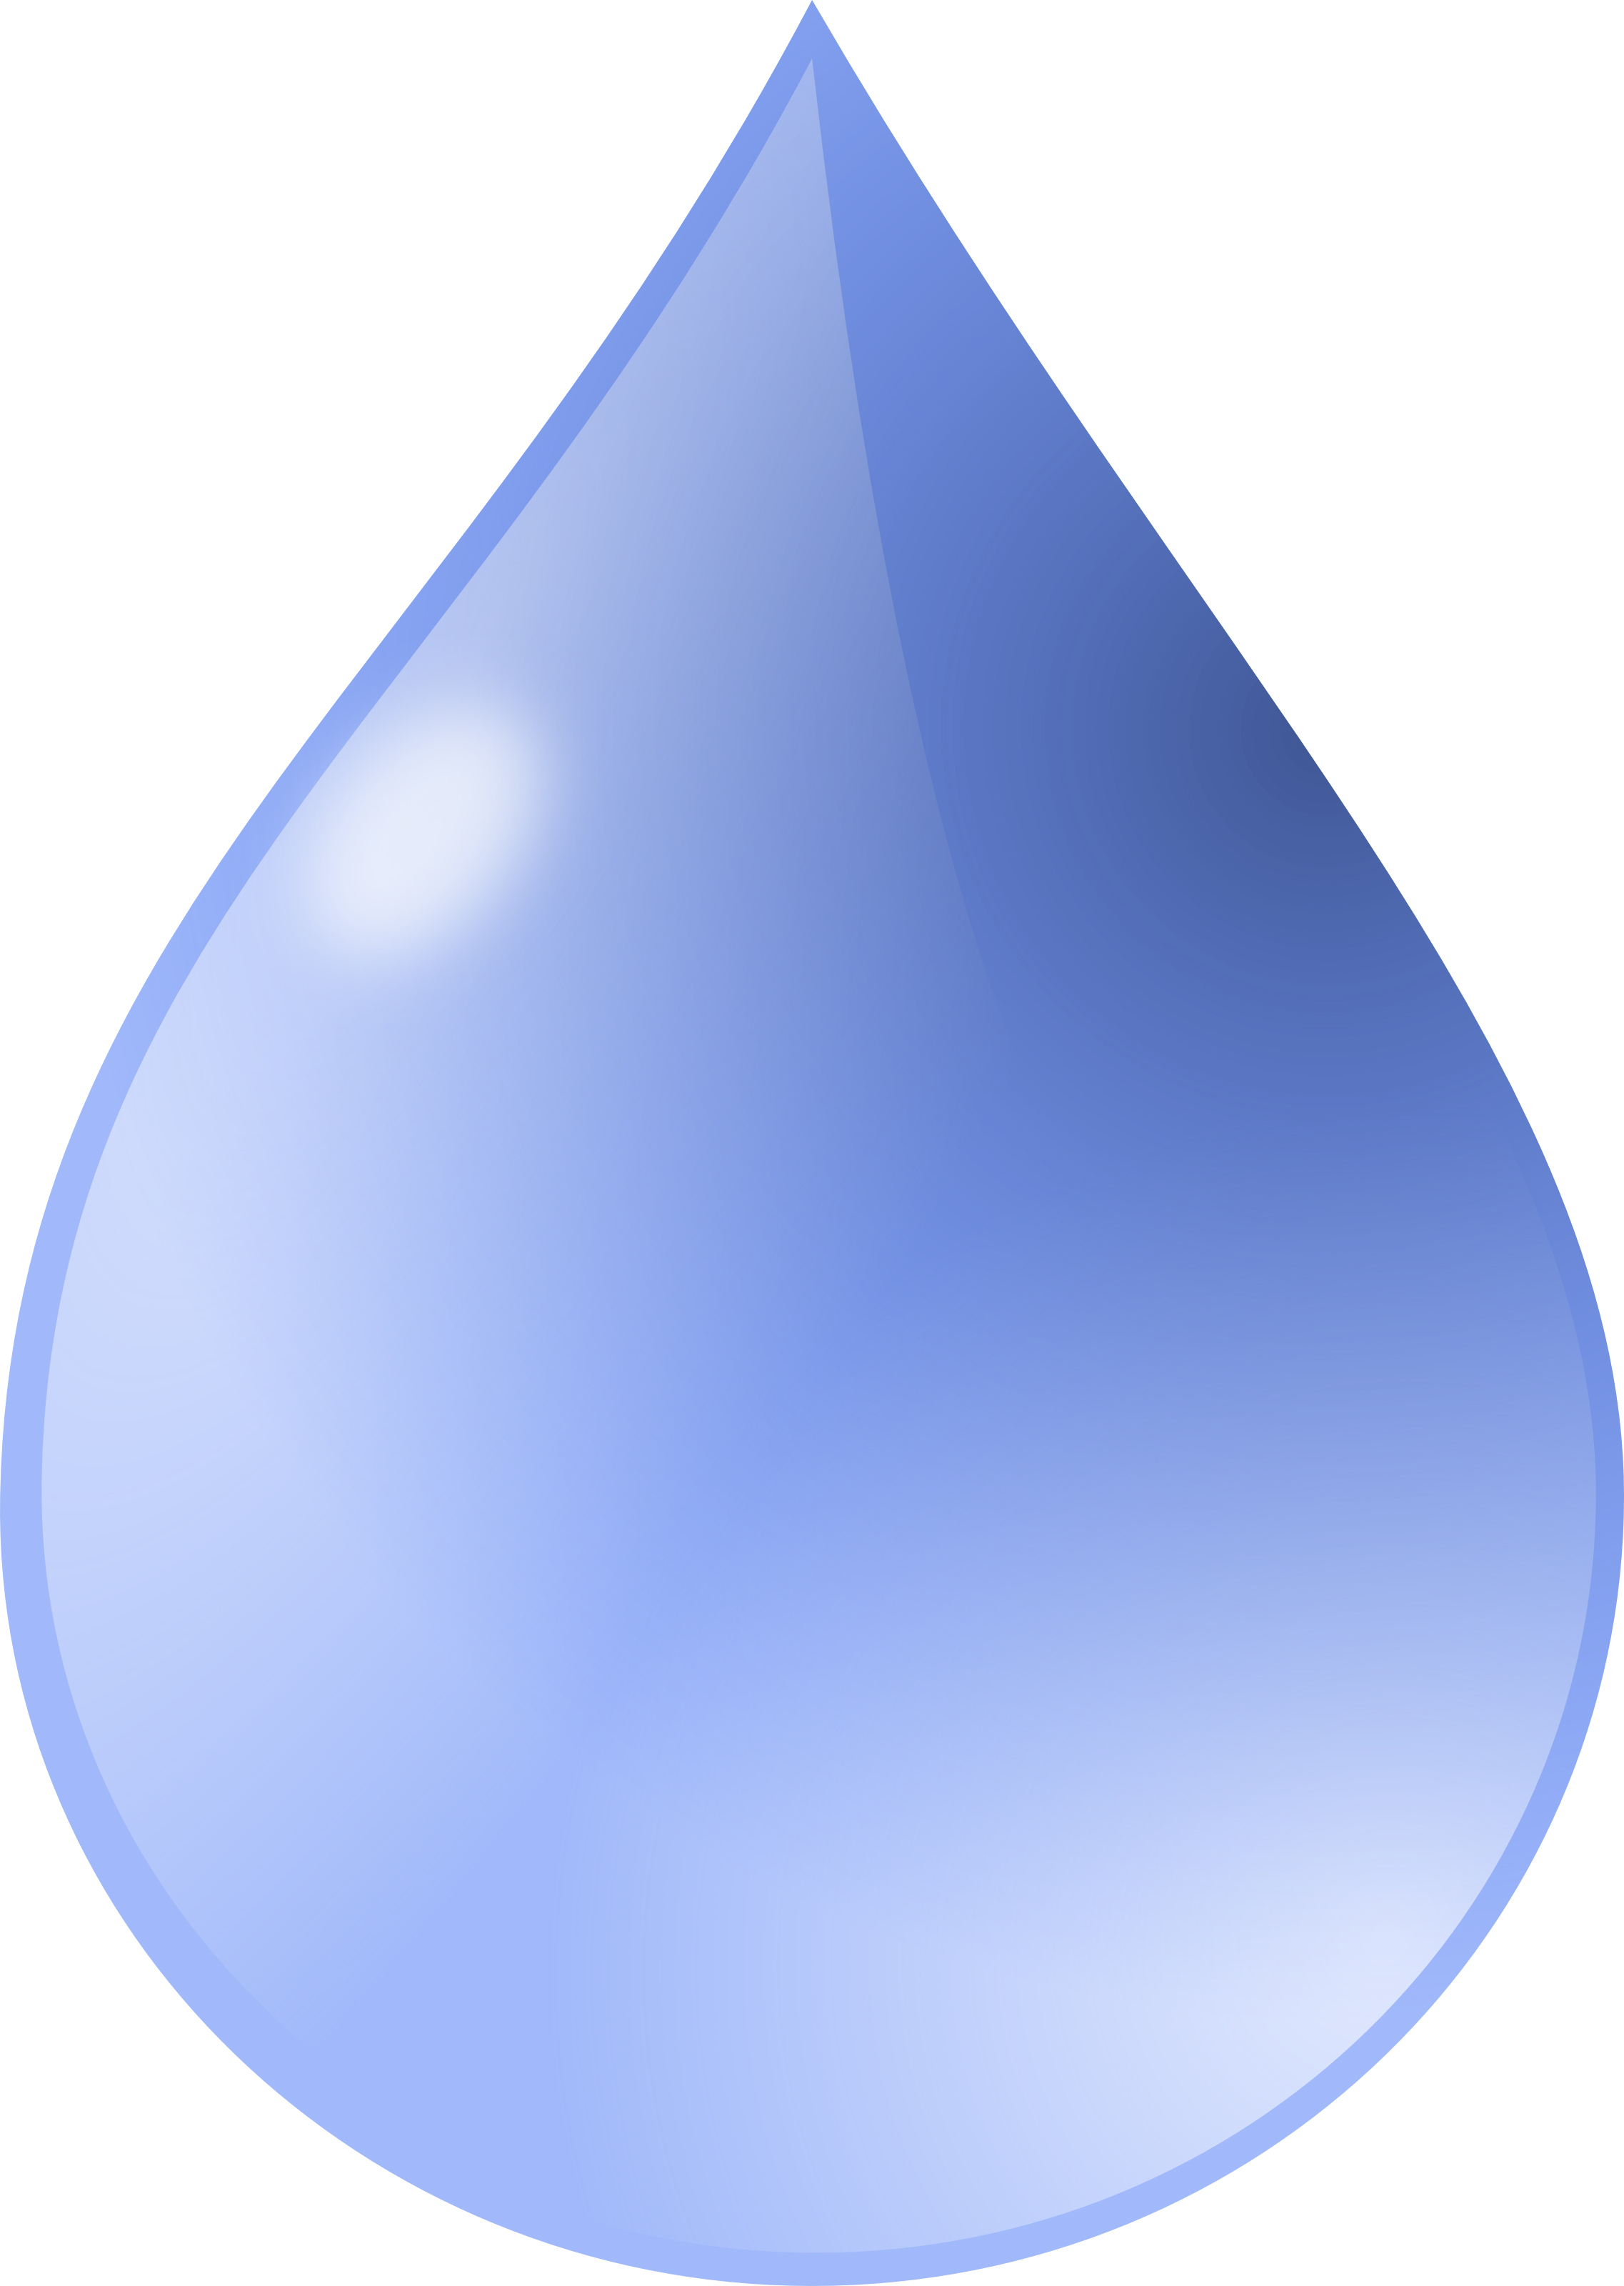 Water cliparts clipart transparent download Water Drop Clipart Illustration clipart transparent download